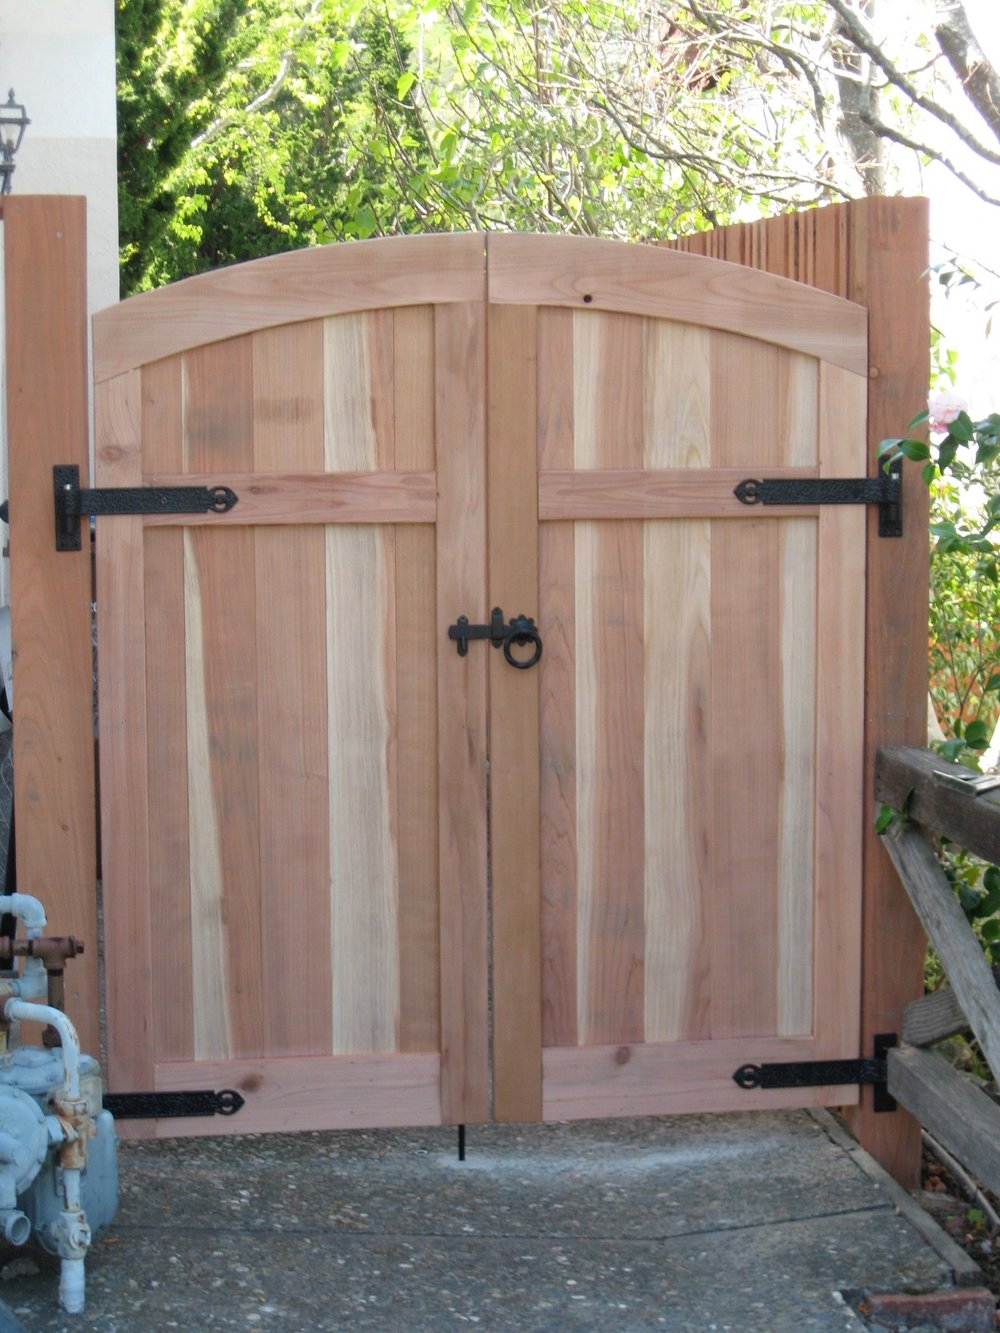 SIDE YARD GATES